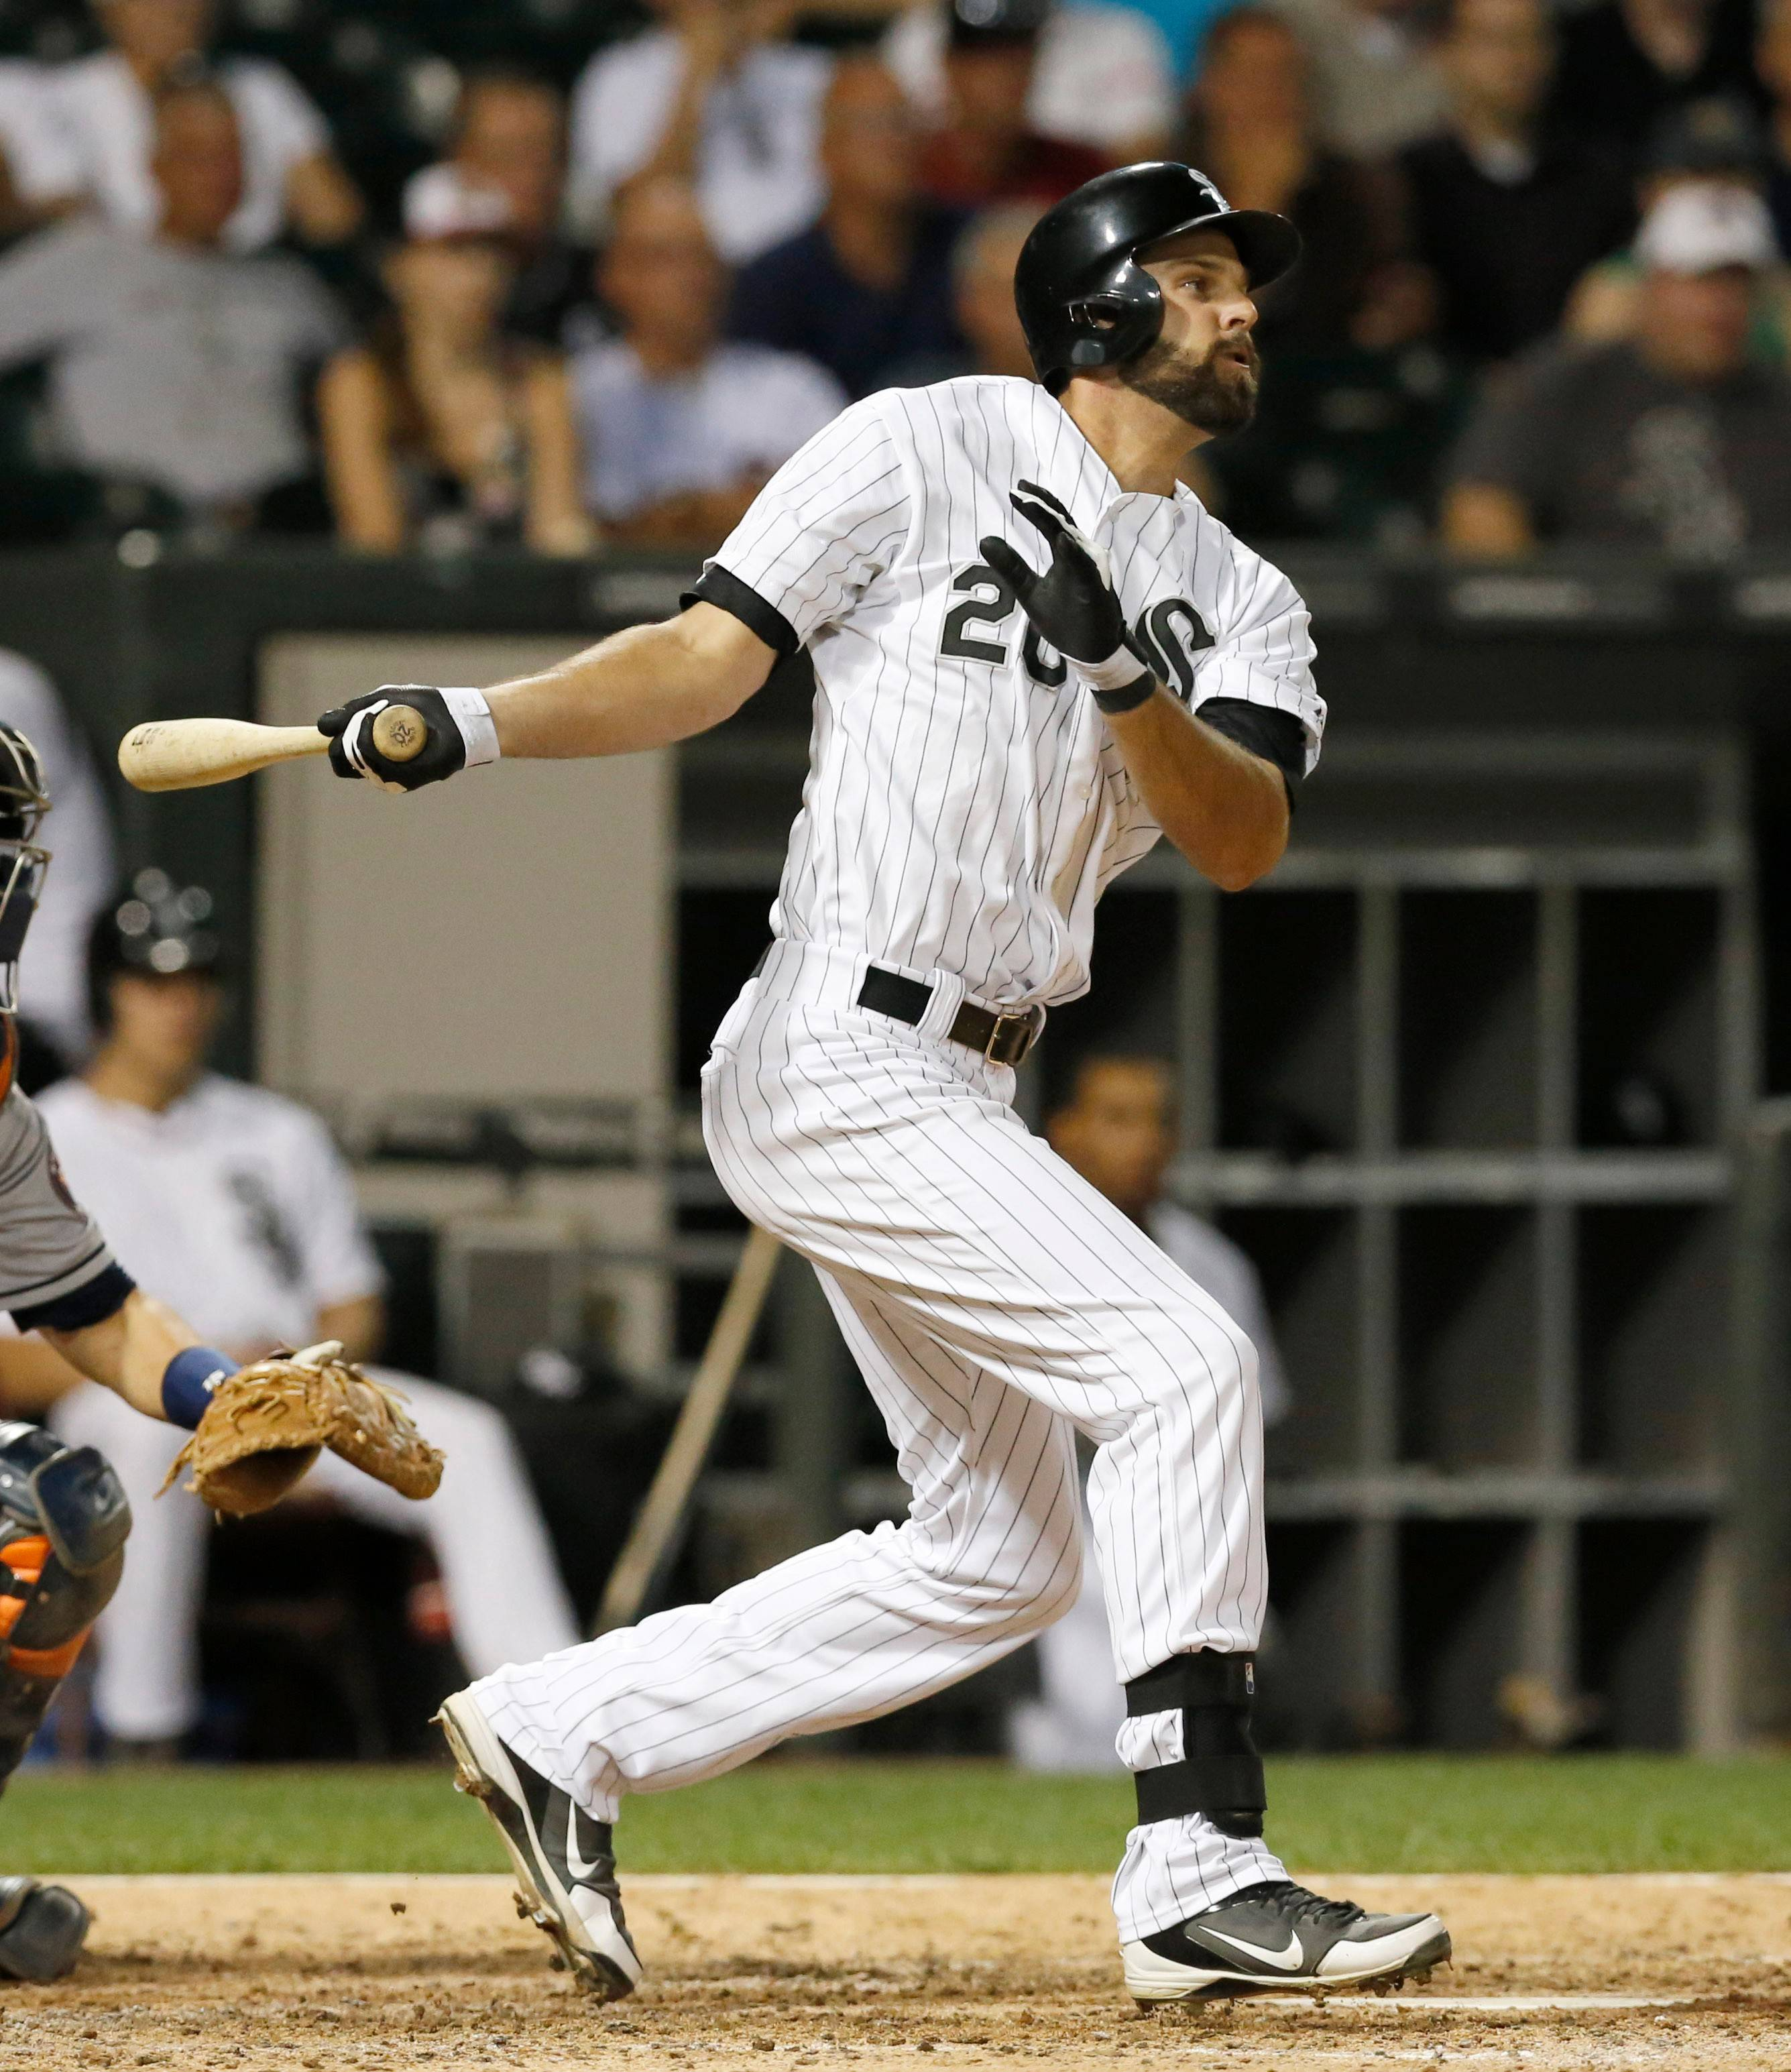 Jordan Danks had a strong spring training with the White Sox, but his only ticket out of Triple-A ball is likely an injury to Dayan Viciedo or Alejandro De Aza.